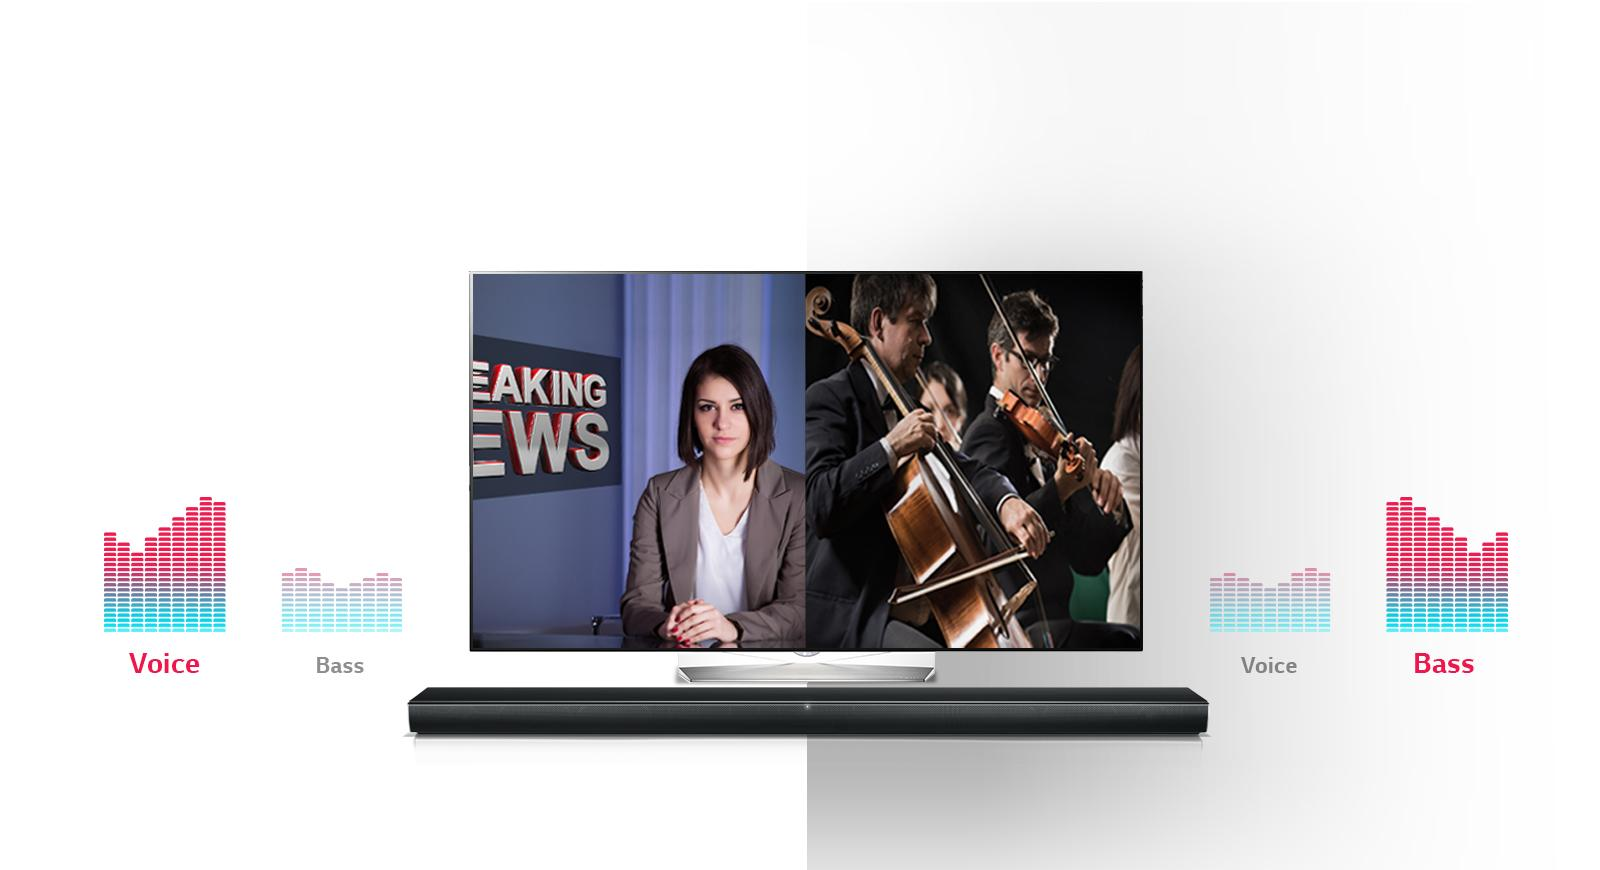 Lg Sh5b 320w 21ch Sound Bar With Wireless Subwoofer And Bluetooth Hdmi Home Wiring Diagram Smart Adaptive Control